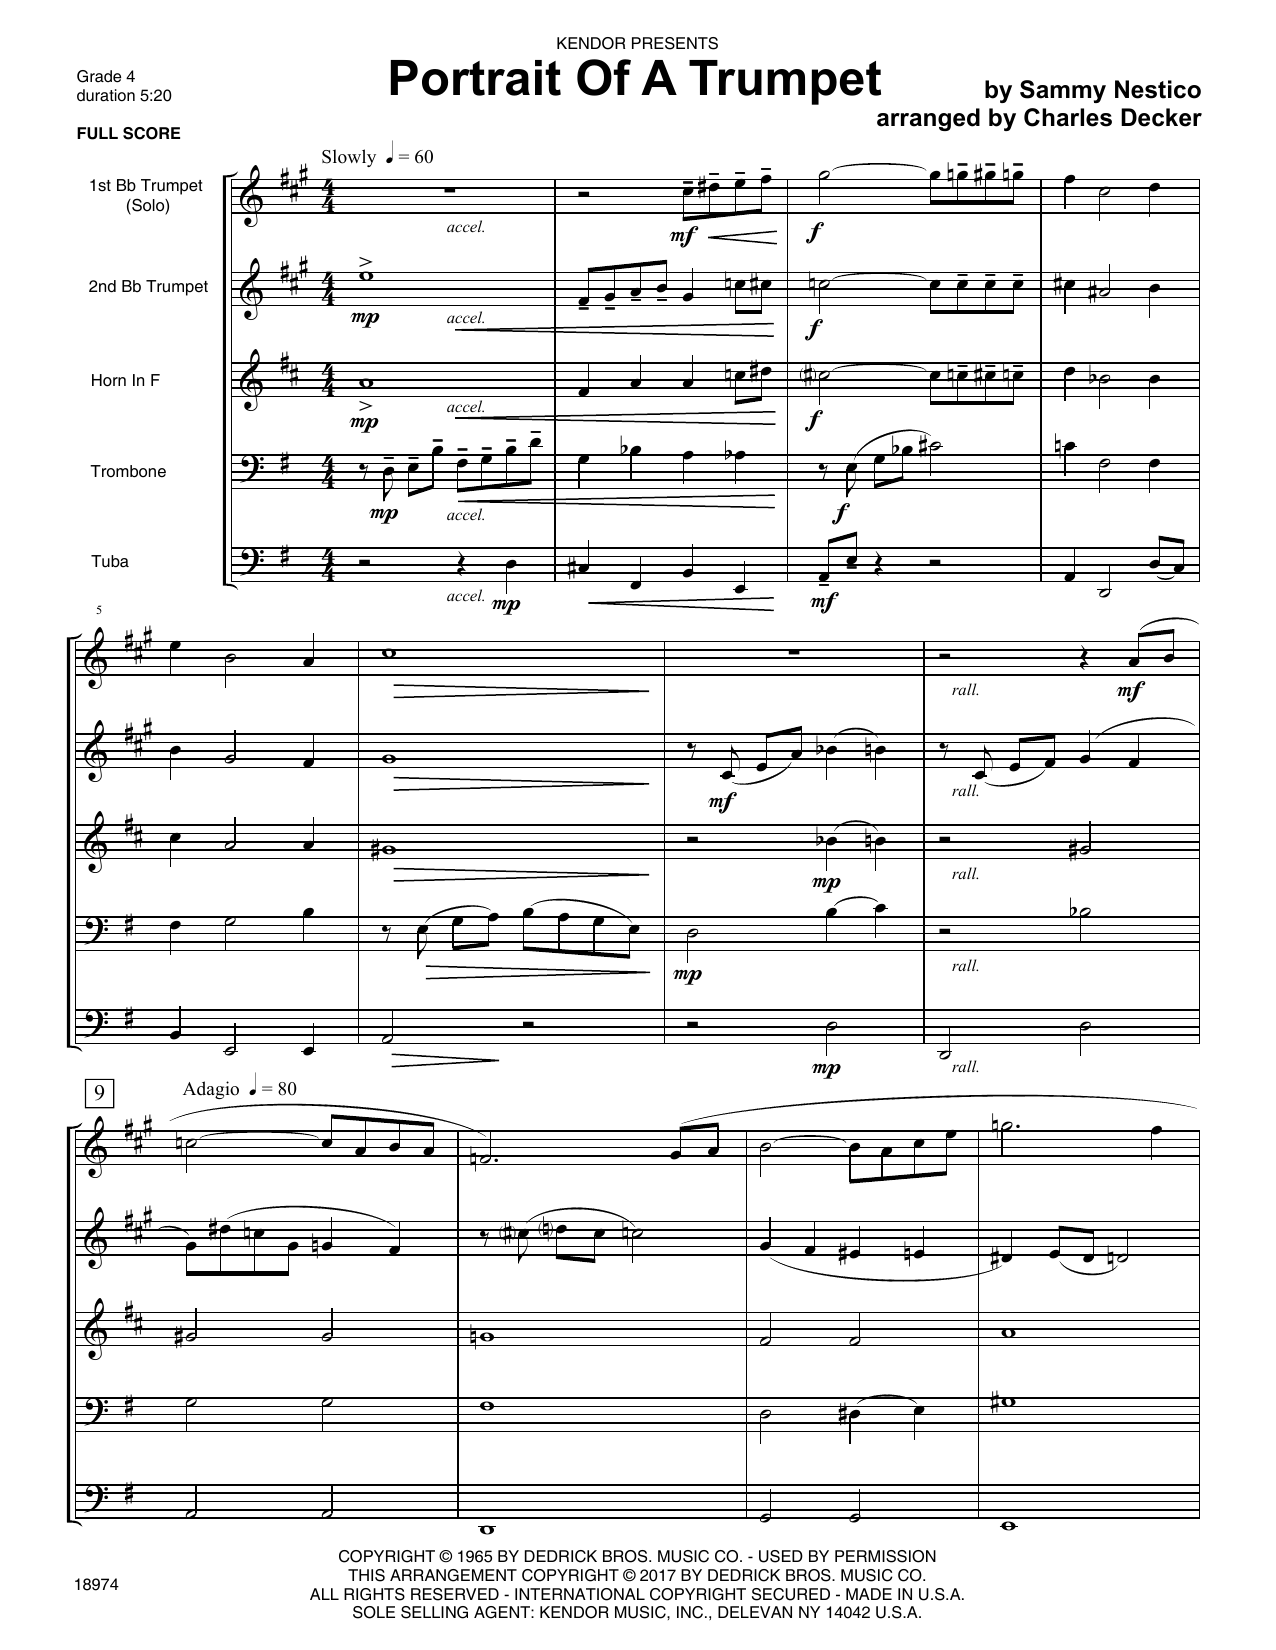 Portrait Of A Trumpet (COMPLETE) sheet music for brass quintet by Sammy Nestico, Charles Decker and Denis DiBlasio. Score Image Preview.